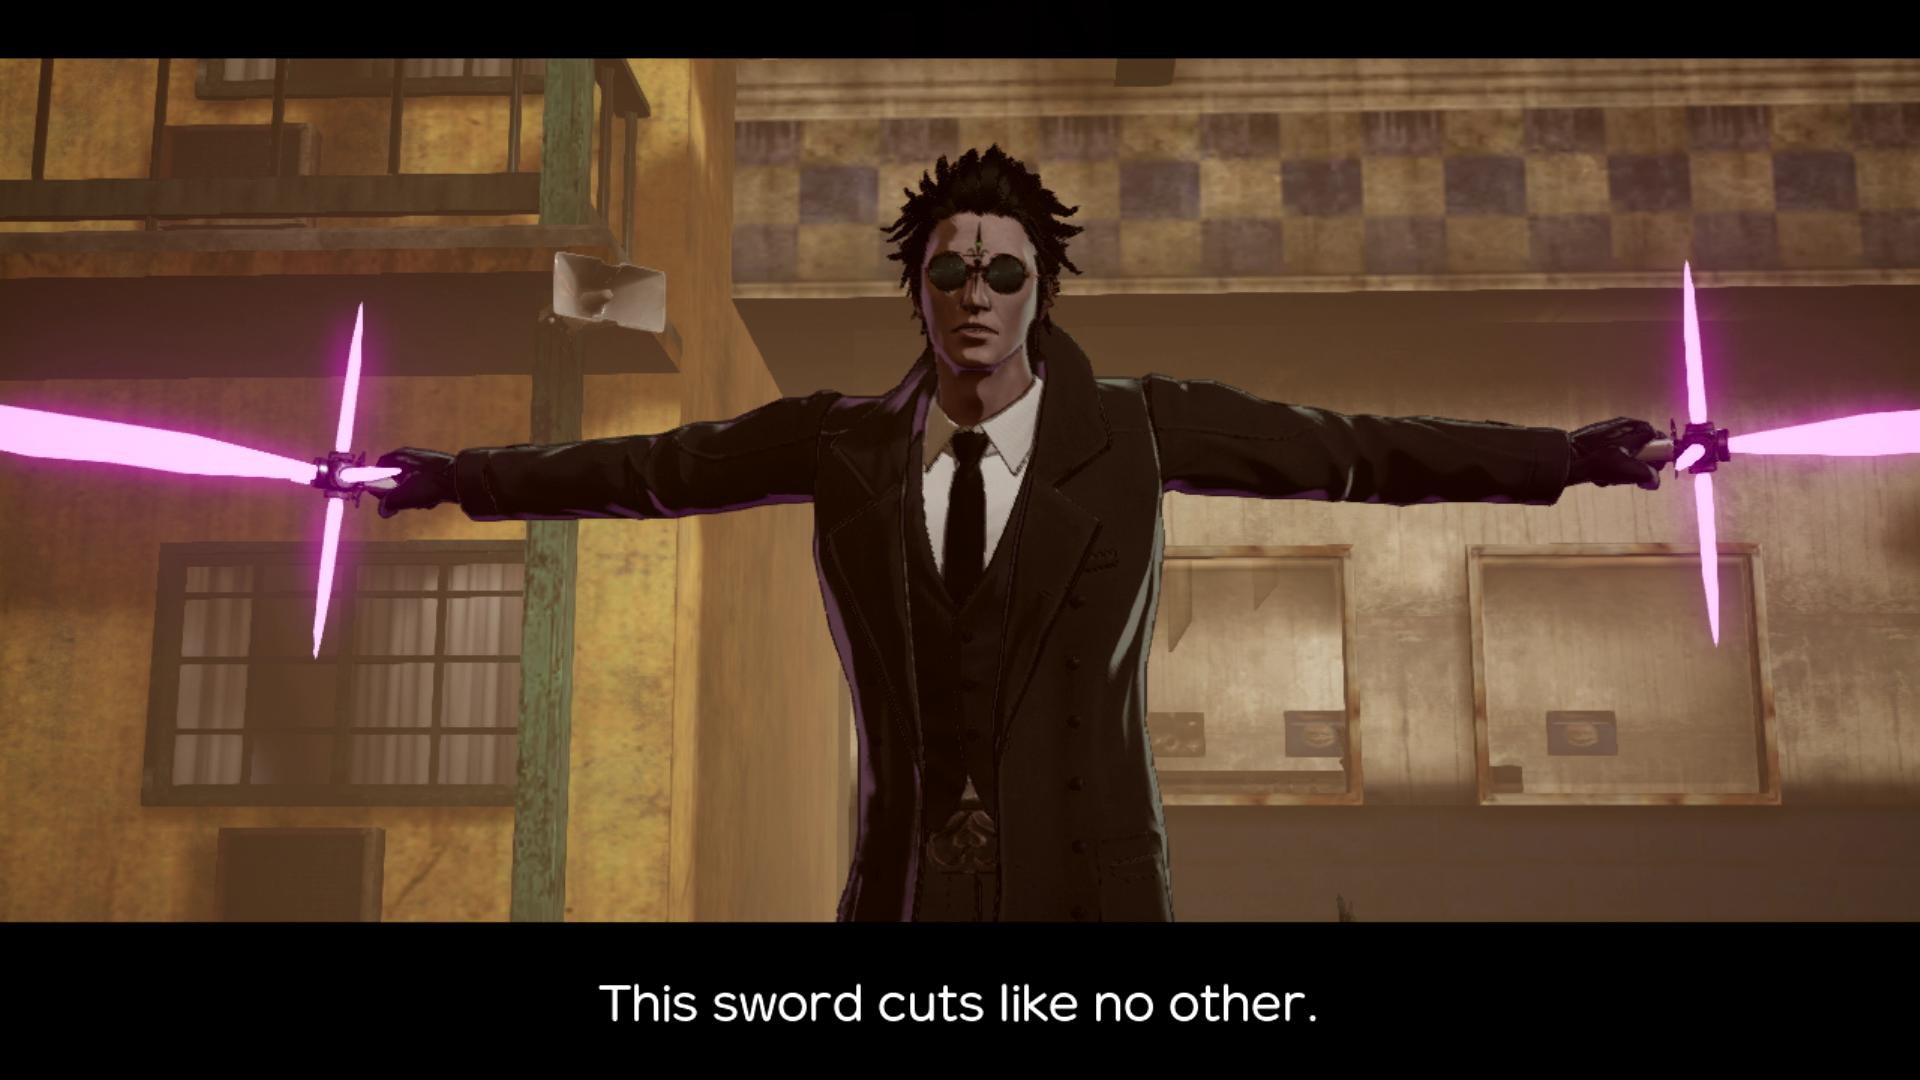 The boss battle against Henry in No More Heroes 3